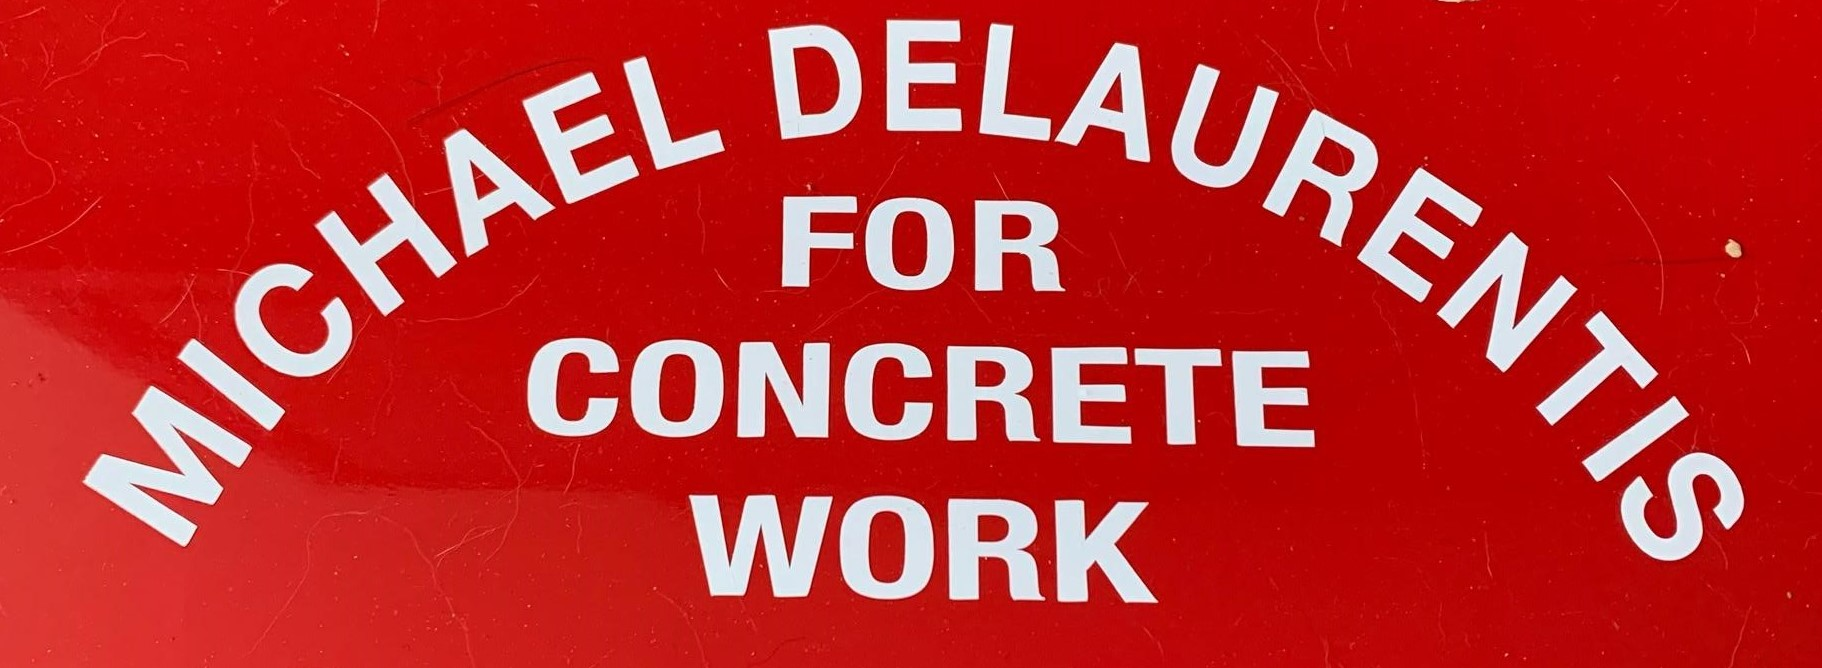 Michael Delaurentis For Concrete Work